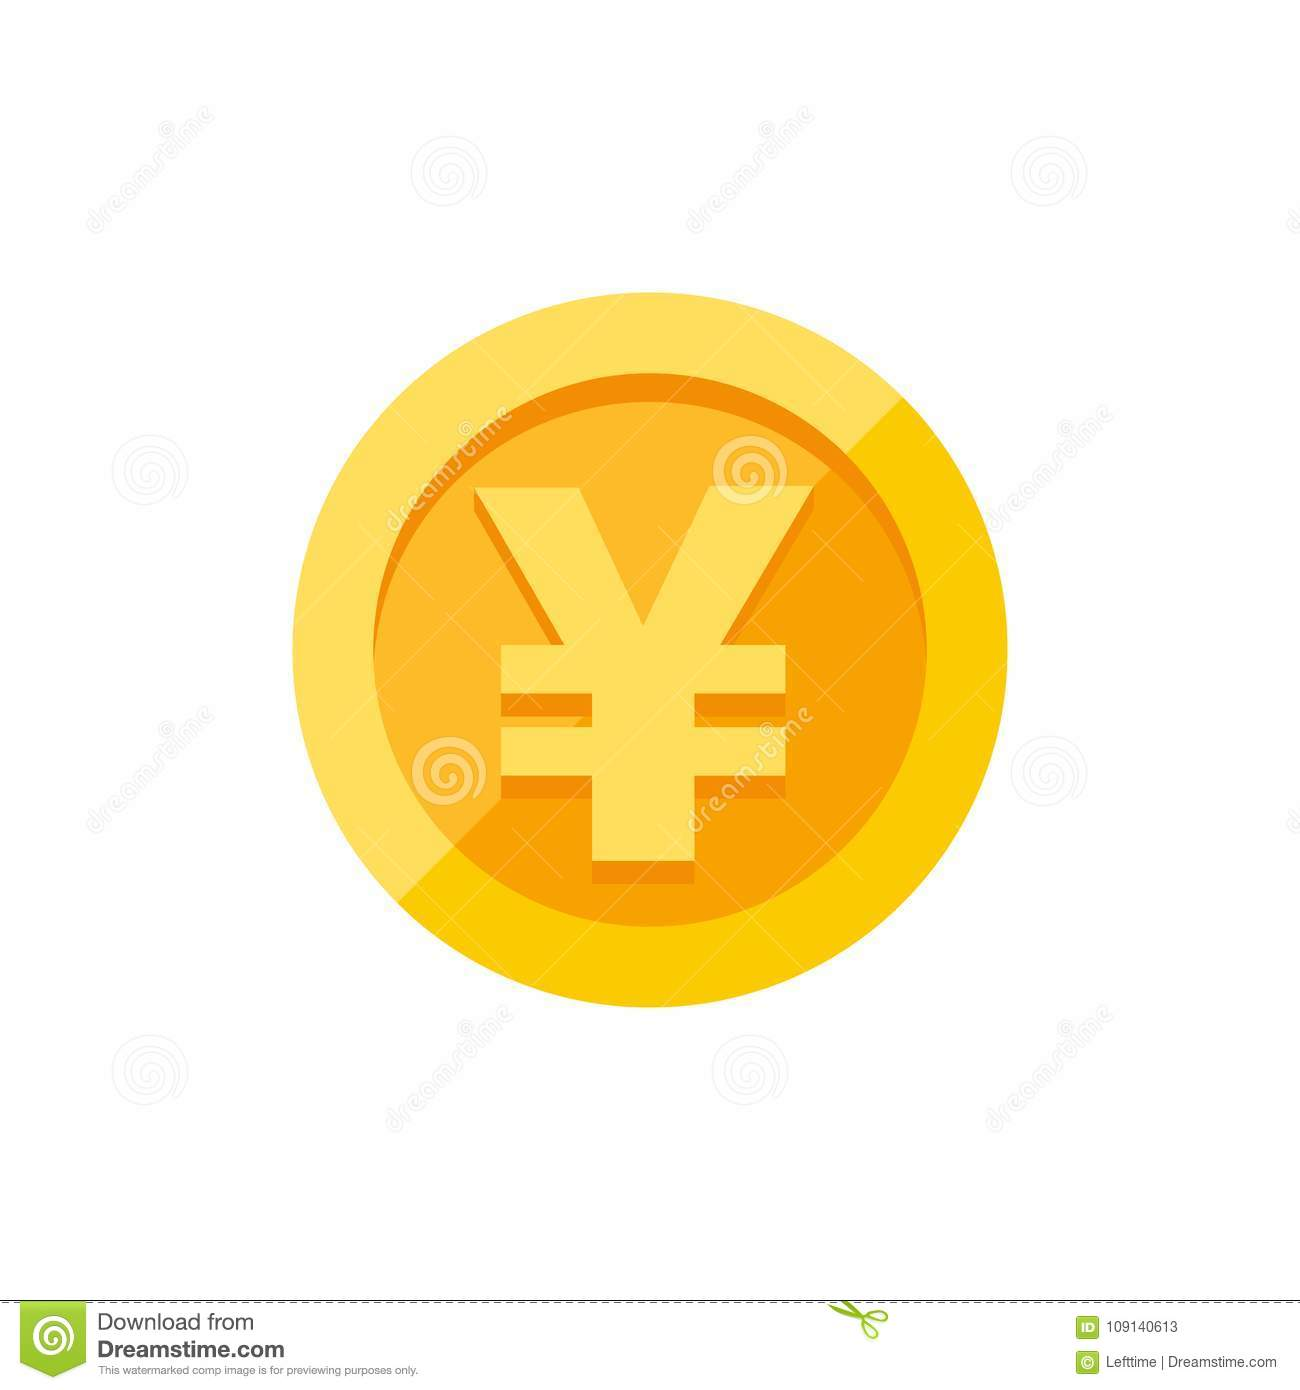 Yen Symbol On Gold Coin Flat Style Stock Vector Illustration Of